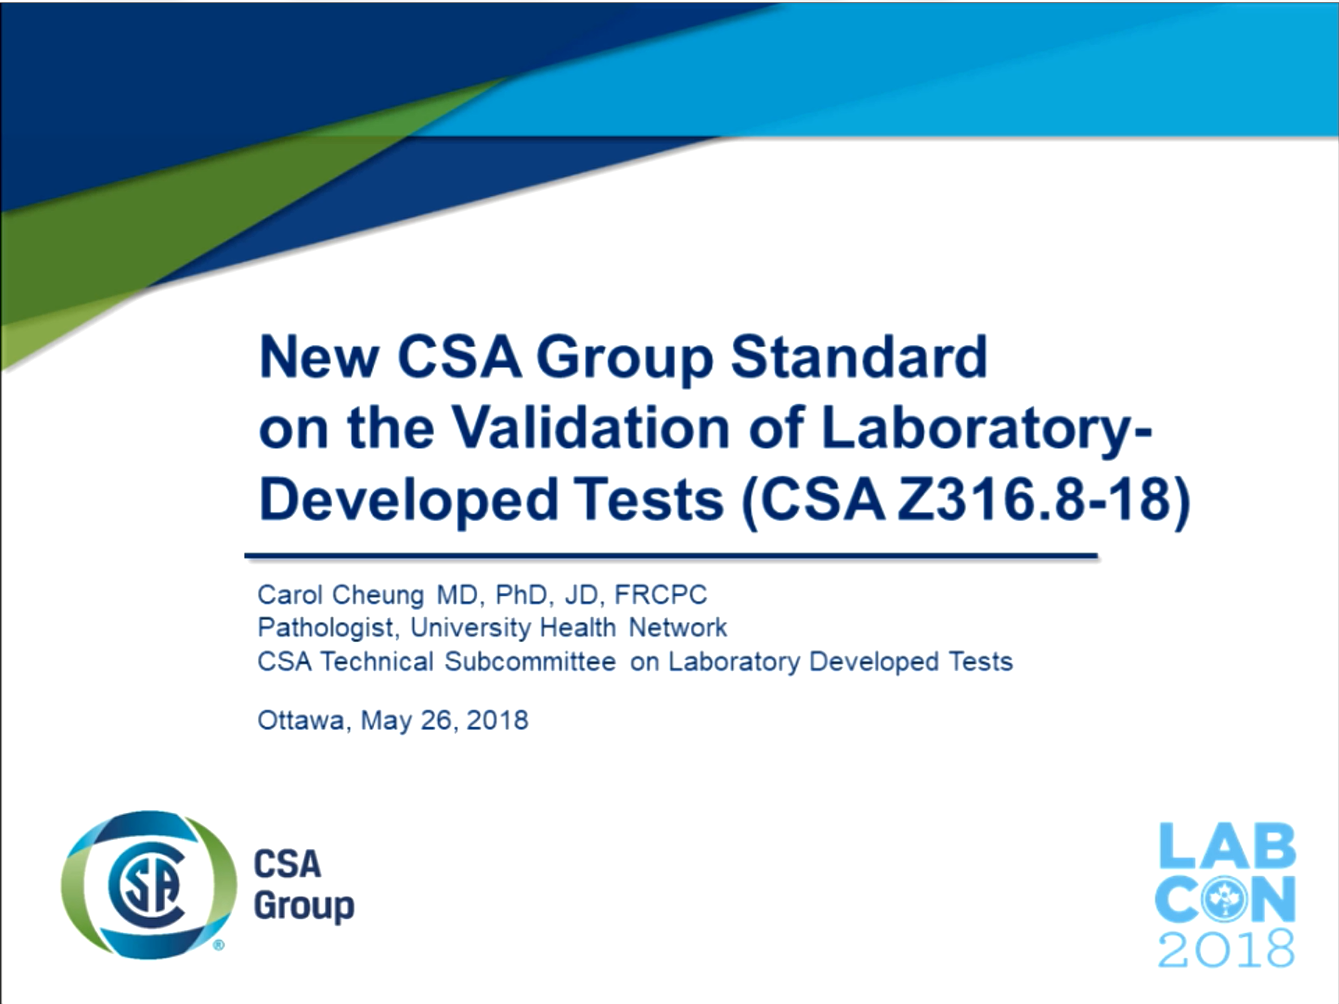 New CSA Group Standard on the Validation of Laboratory-Developed